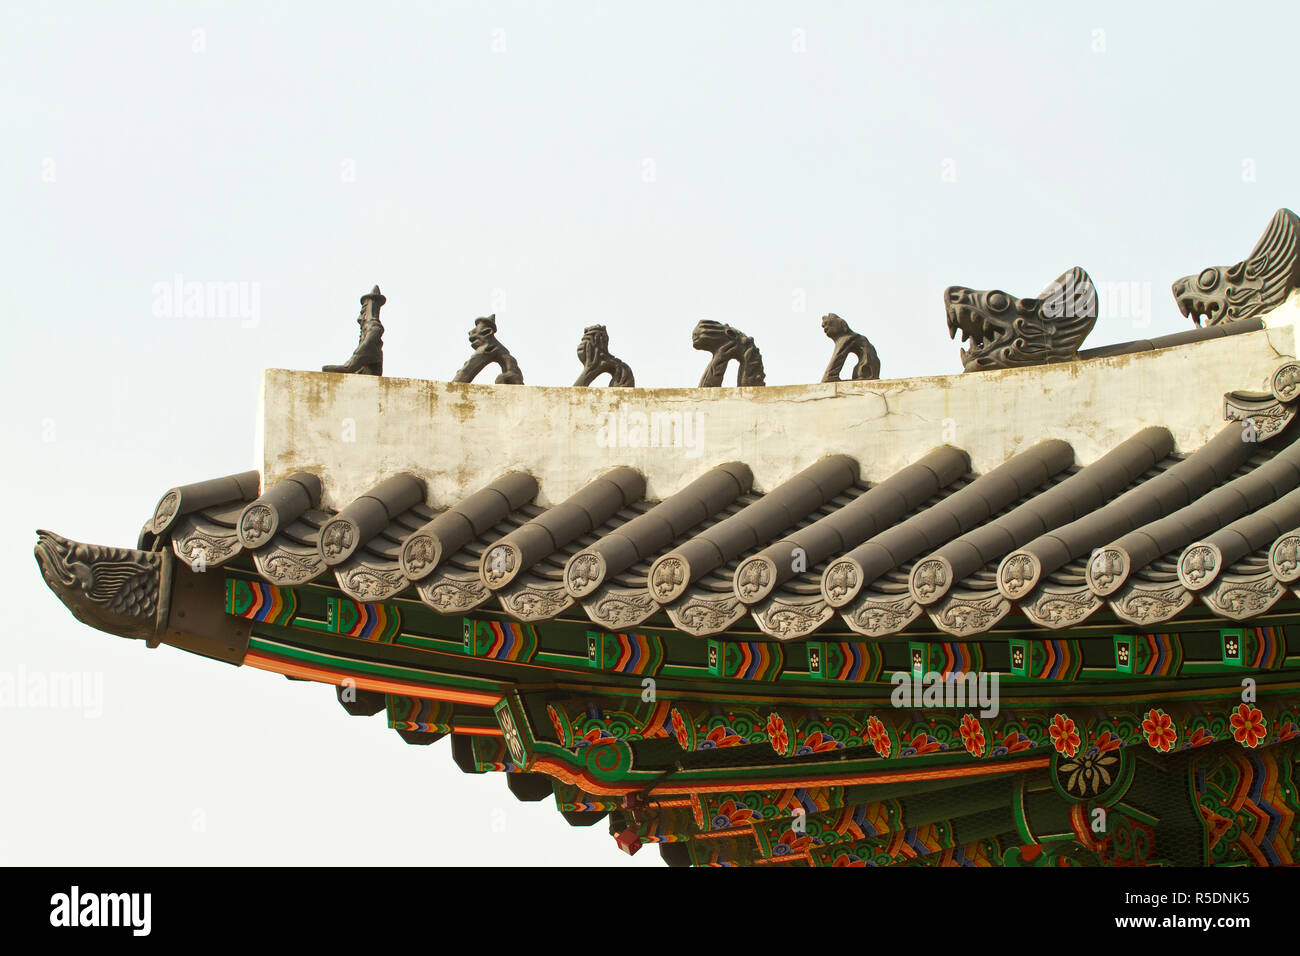 Korea, Seoul, Gyeongbokgung Palace, mythical creatures on Roof - Stock Image